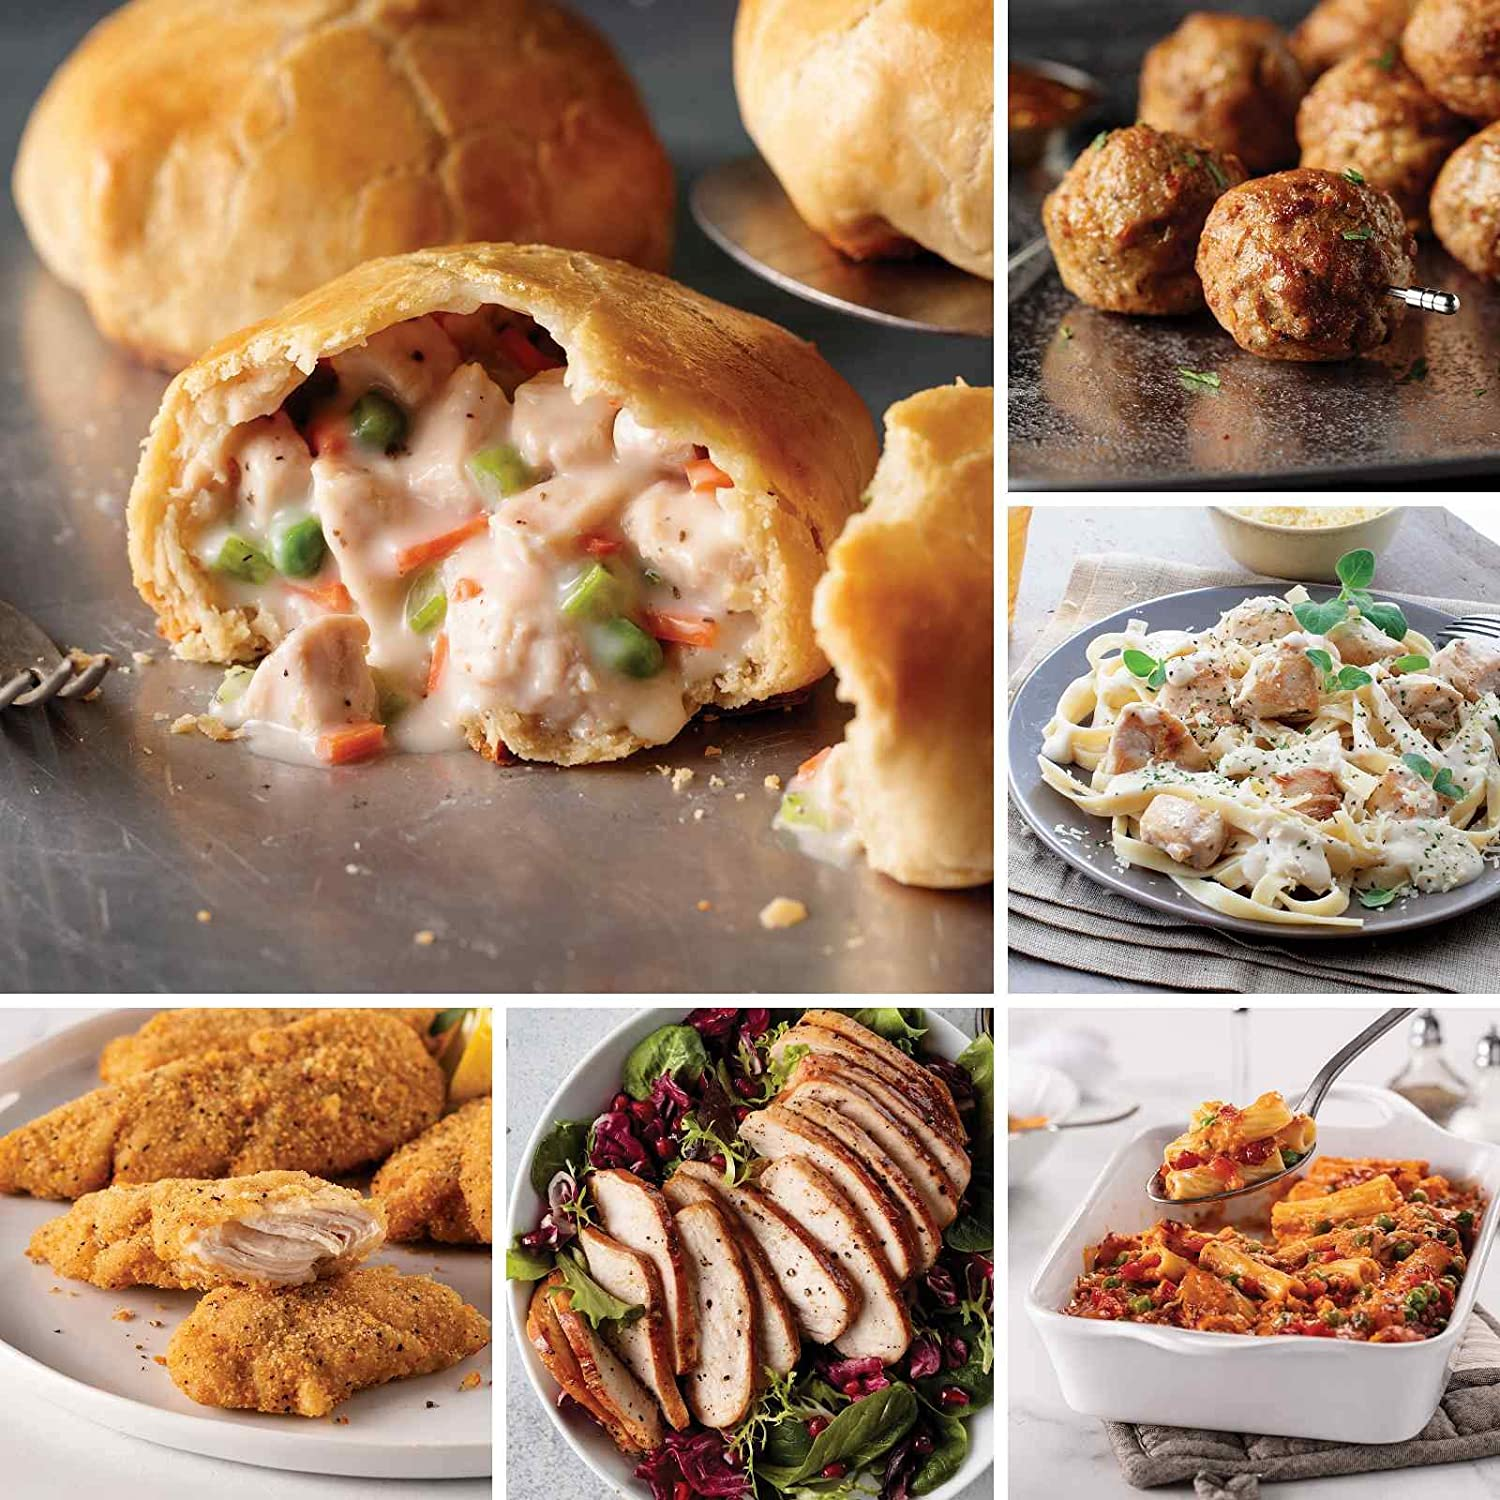 Family Packed Favorites from Omaha Steaks (Chicken in Pastry, Oven-Fried Chicken Tenders, Fully Cooked Sliced Chicken Breast, Rigatoni alla Vodka with Pancetta, Chicken Fettuccine Alfredo, and more)